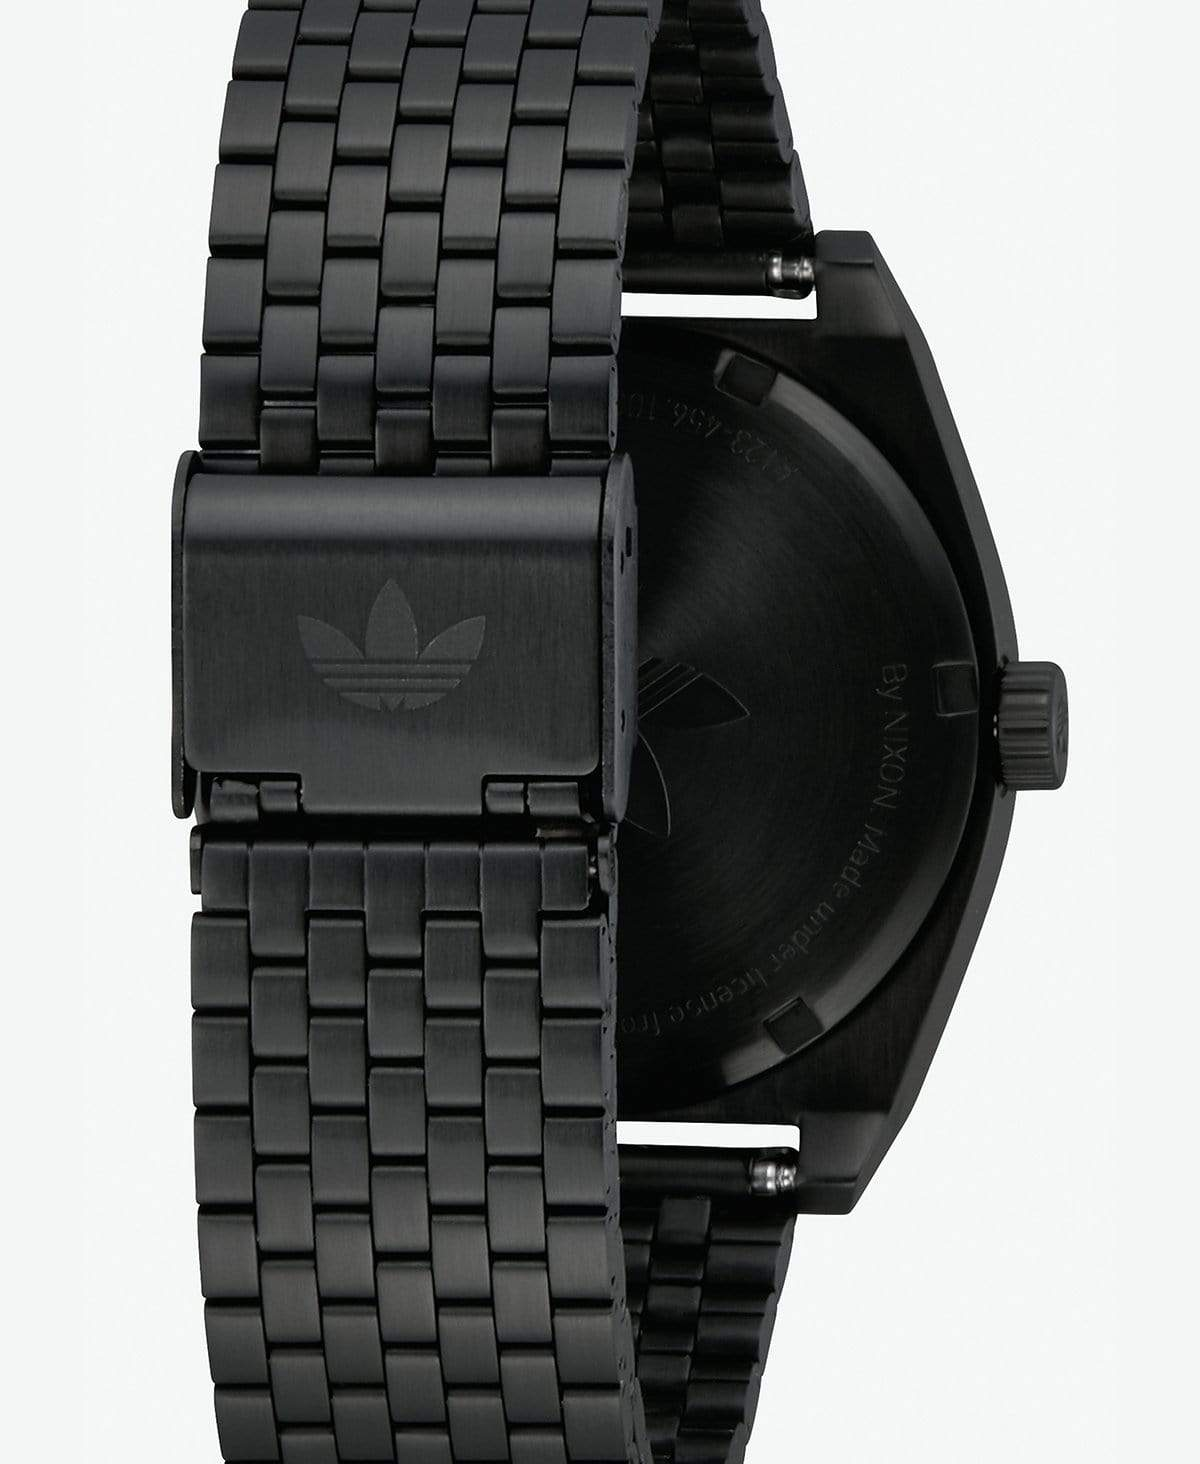 Adidas Originals Process_M1 All Black